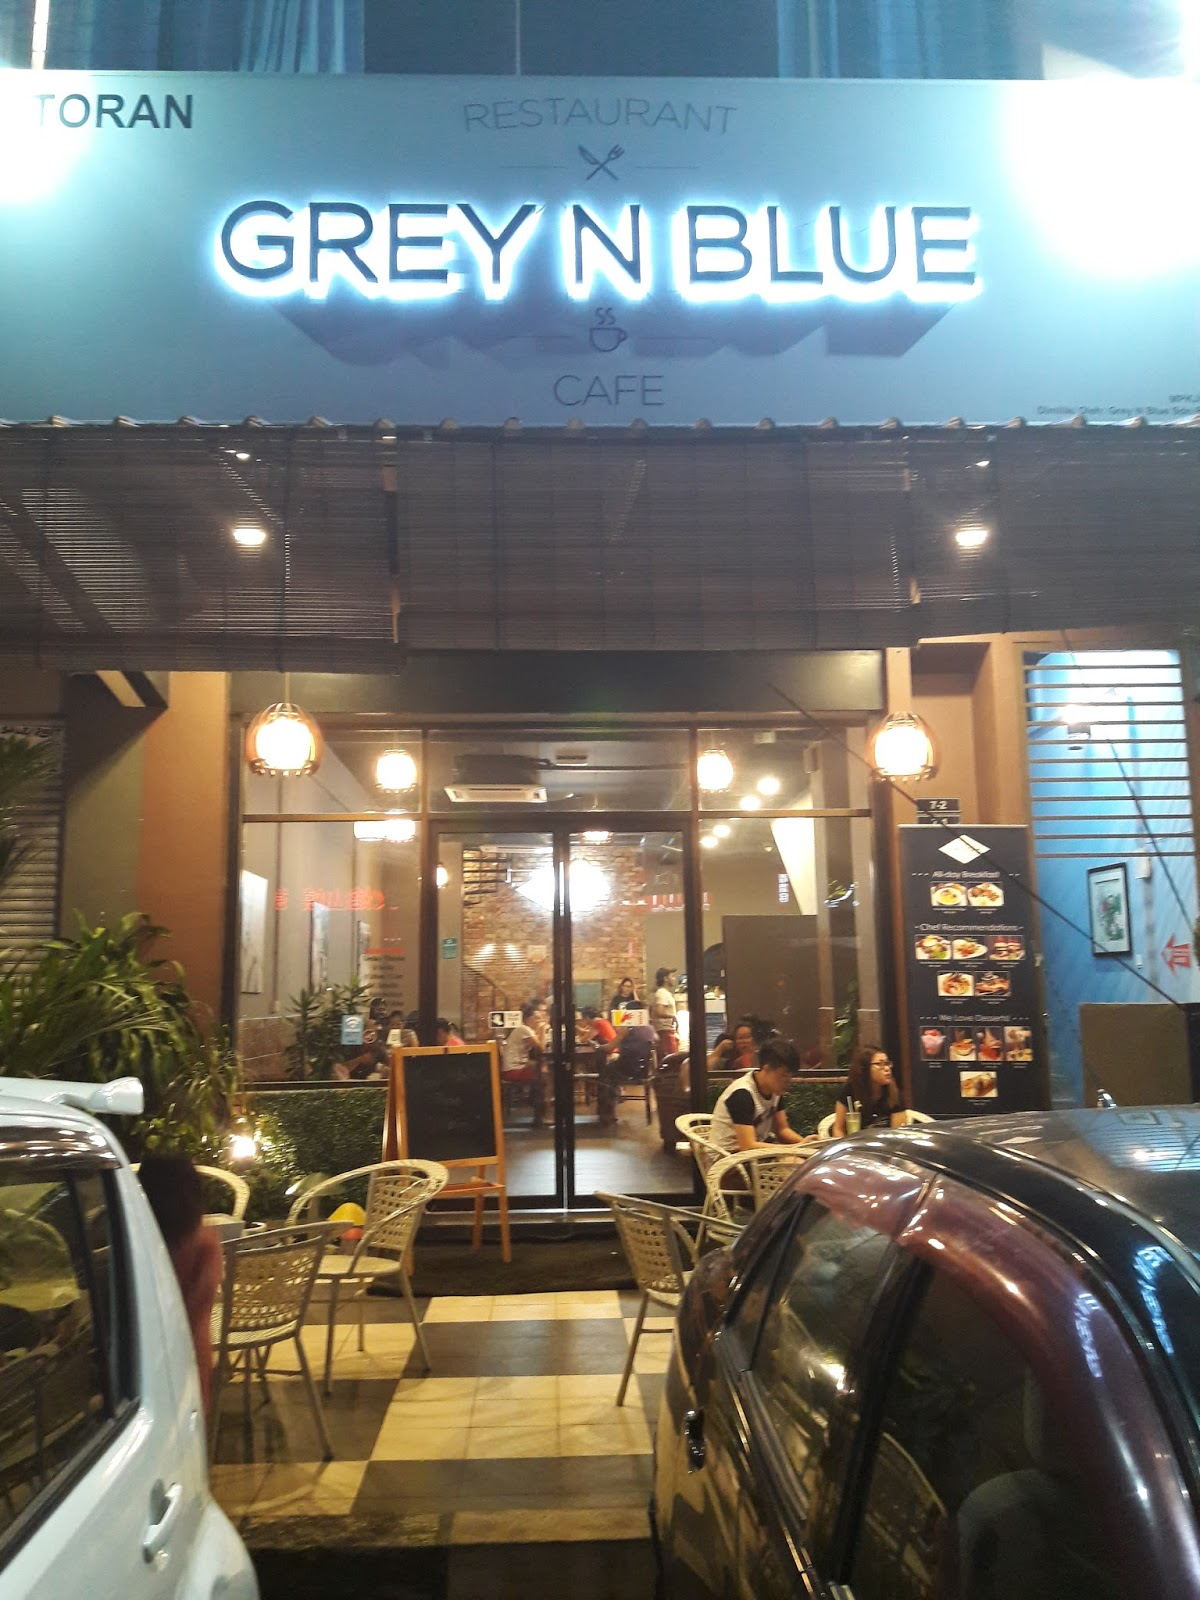 i was invited to grey n blue and i would recommend this restaurant if you want a nice and cozy restaurant with delicious food